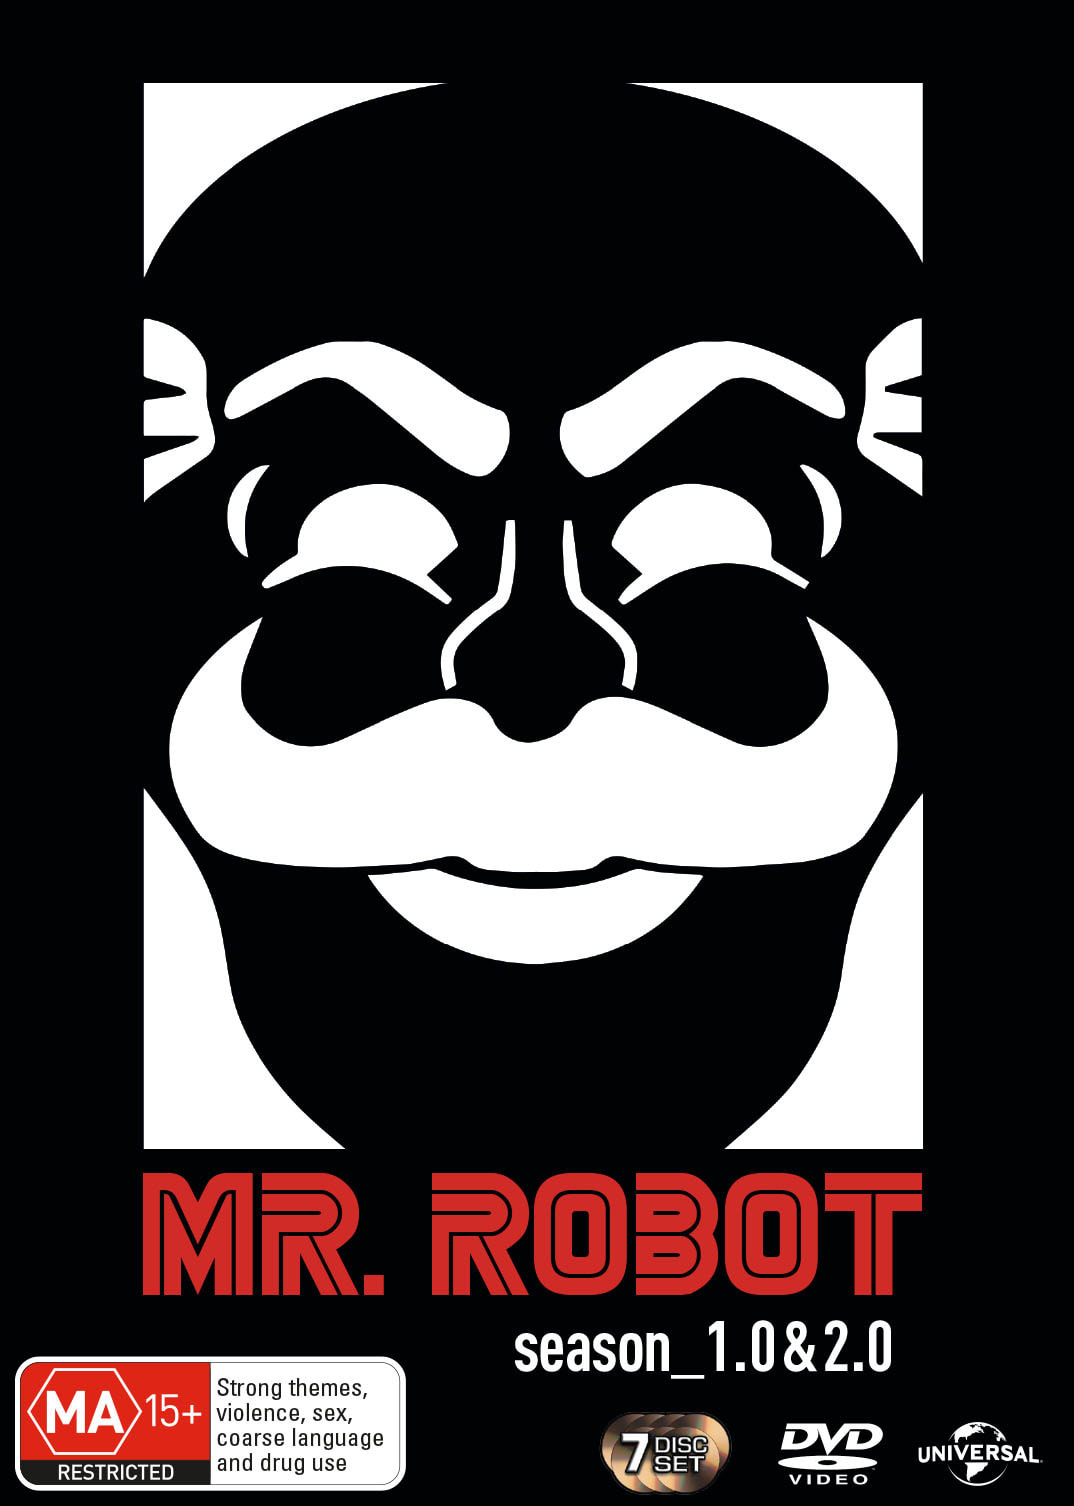 Mr. Robot: Season_1.0 & 2.0 [DVD]